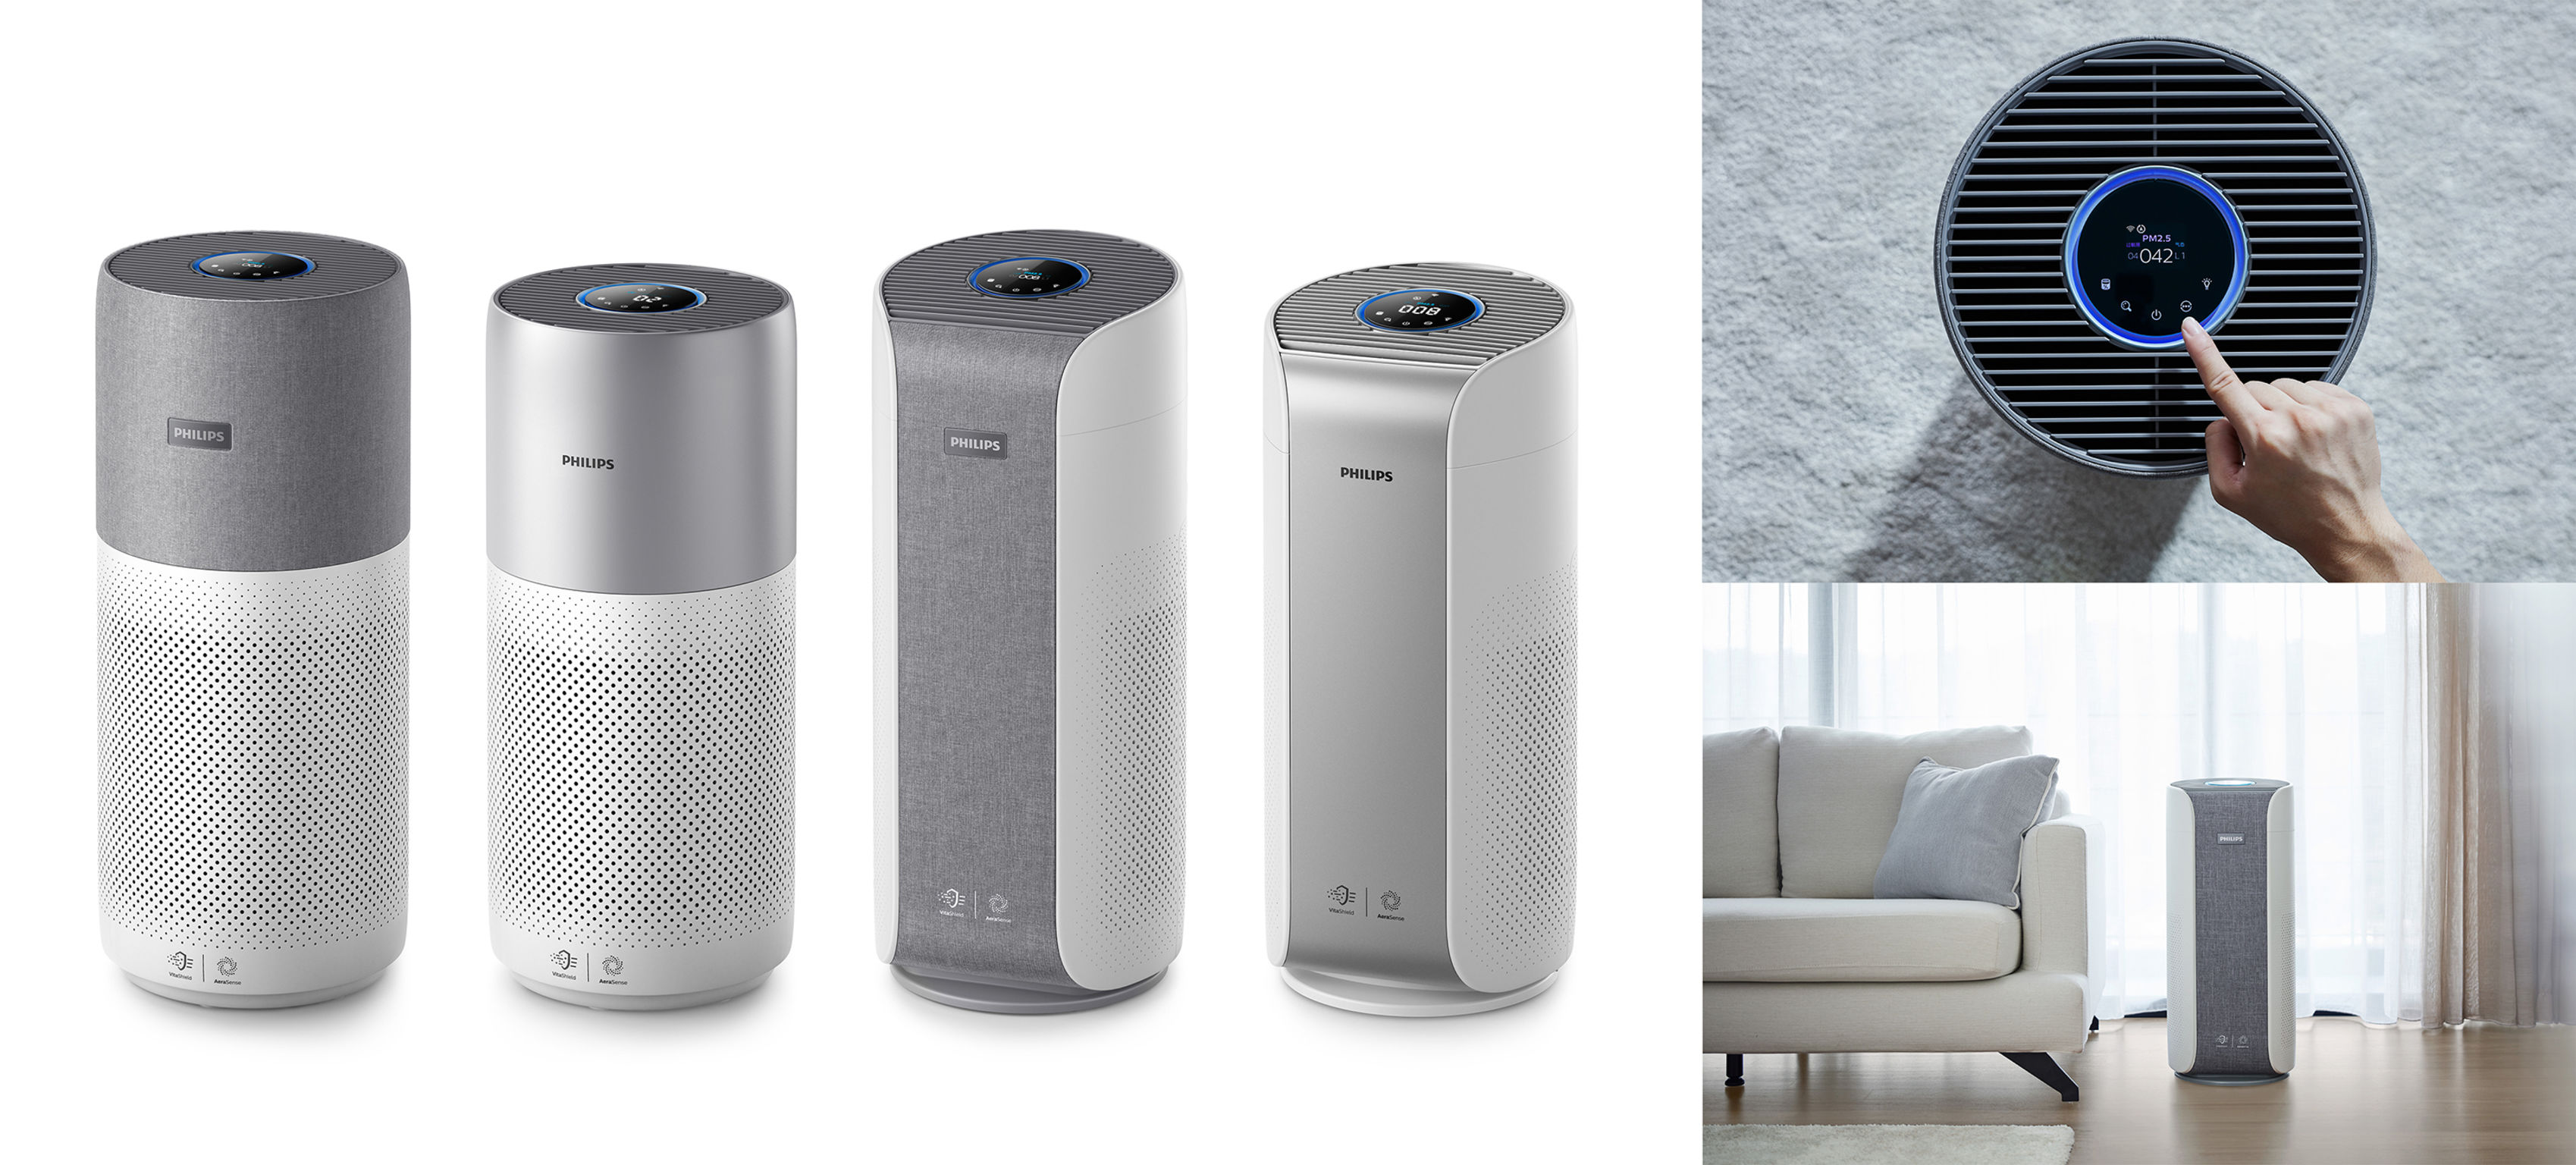 Philips Air Purifier | iF WORLD DESIGN GUIDE